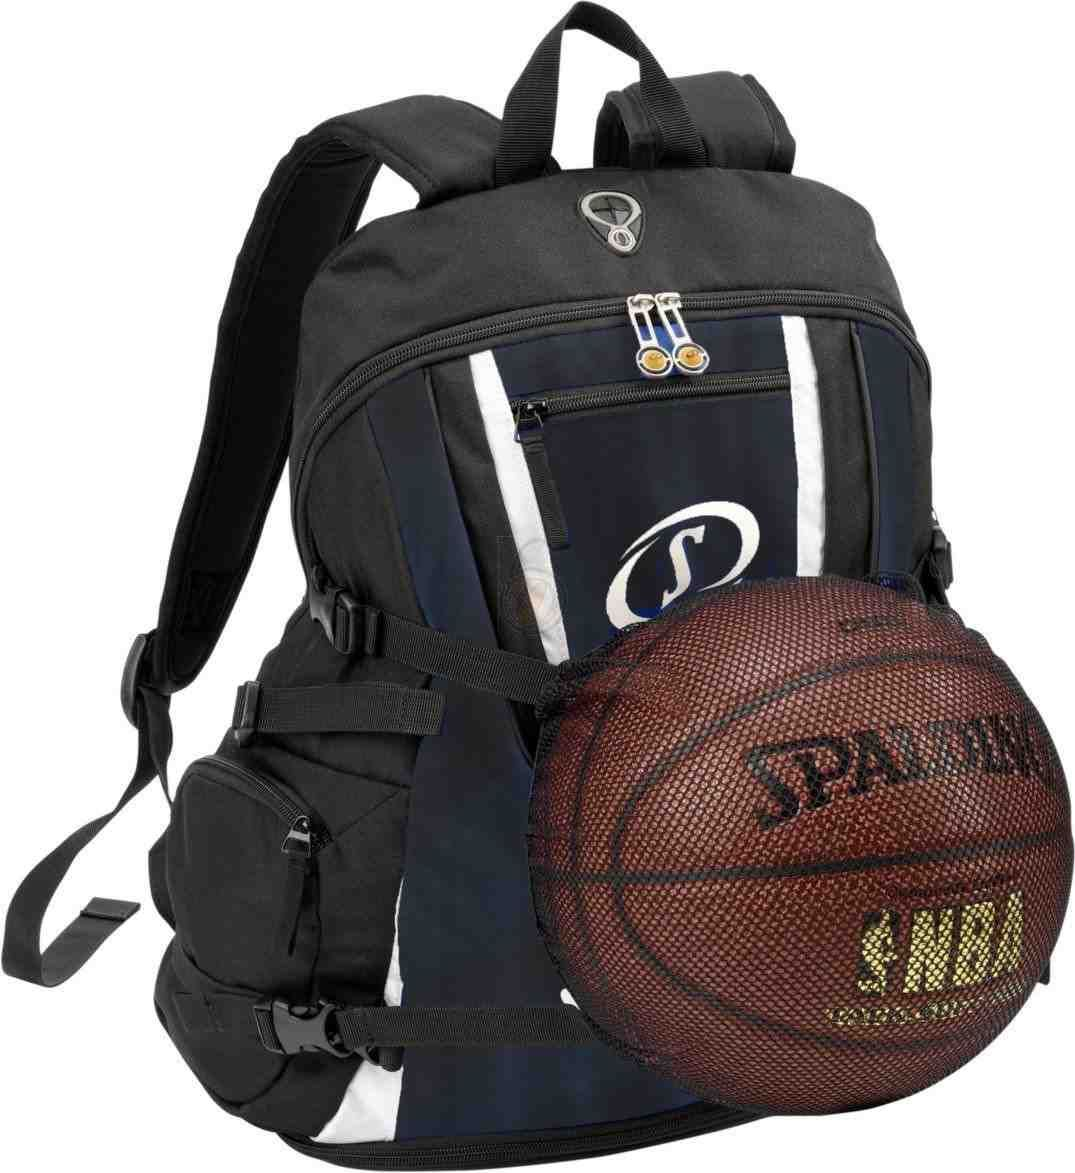 fd7cf149a55 Basketball Ball Bags   Better Basketball Bags in 2019   Pinterest ...